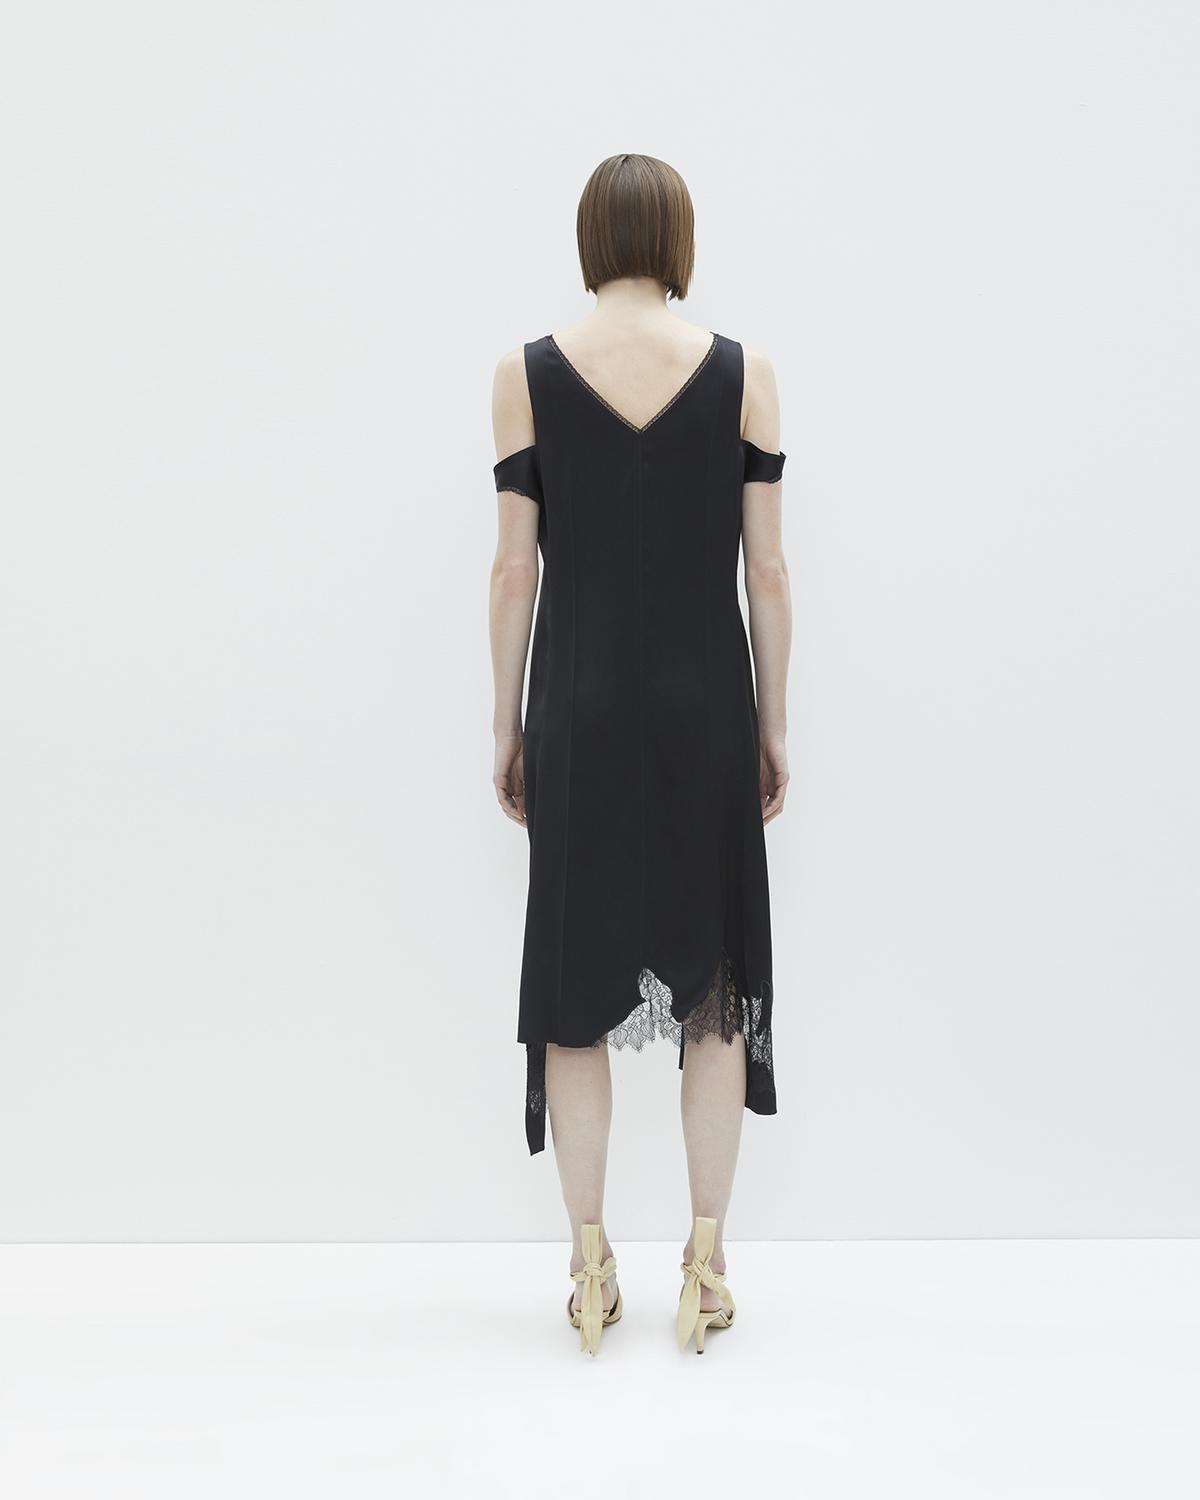 DECONSTRUCTED SLIP DRESS